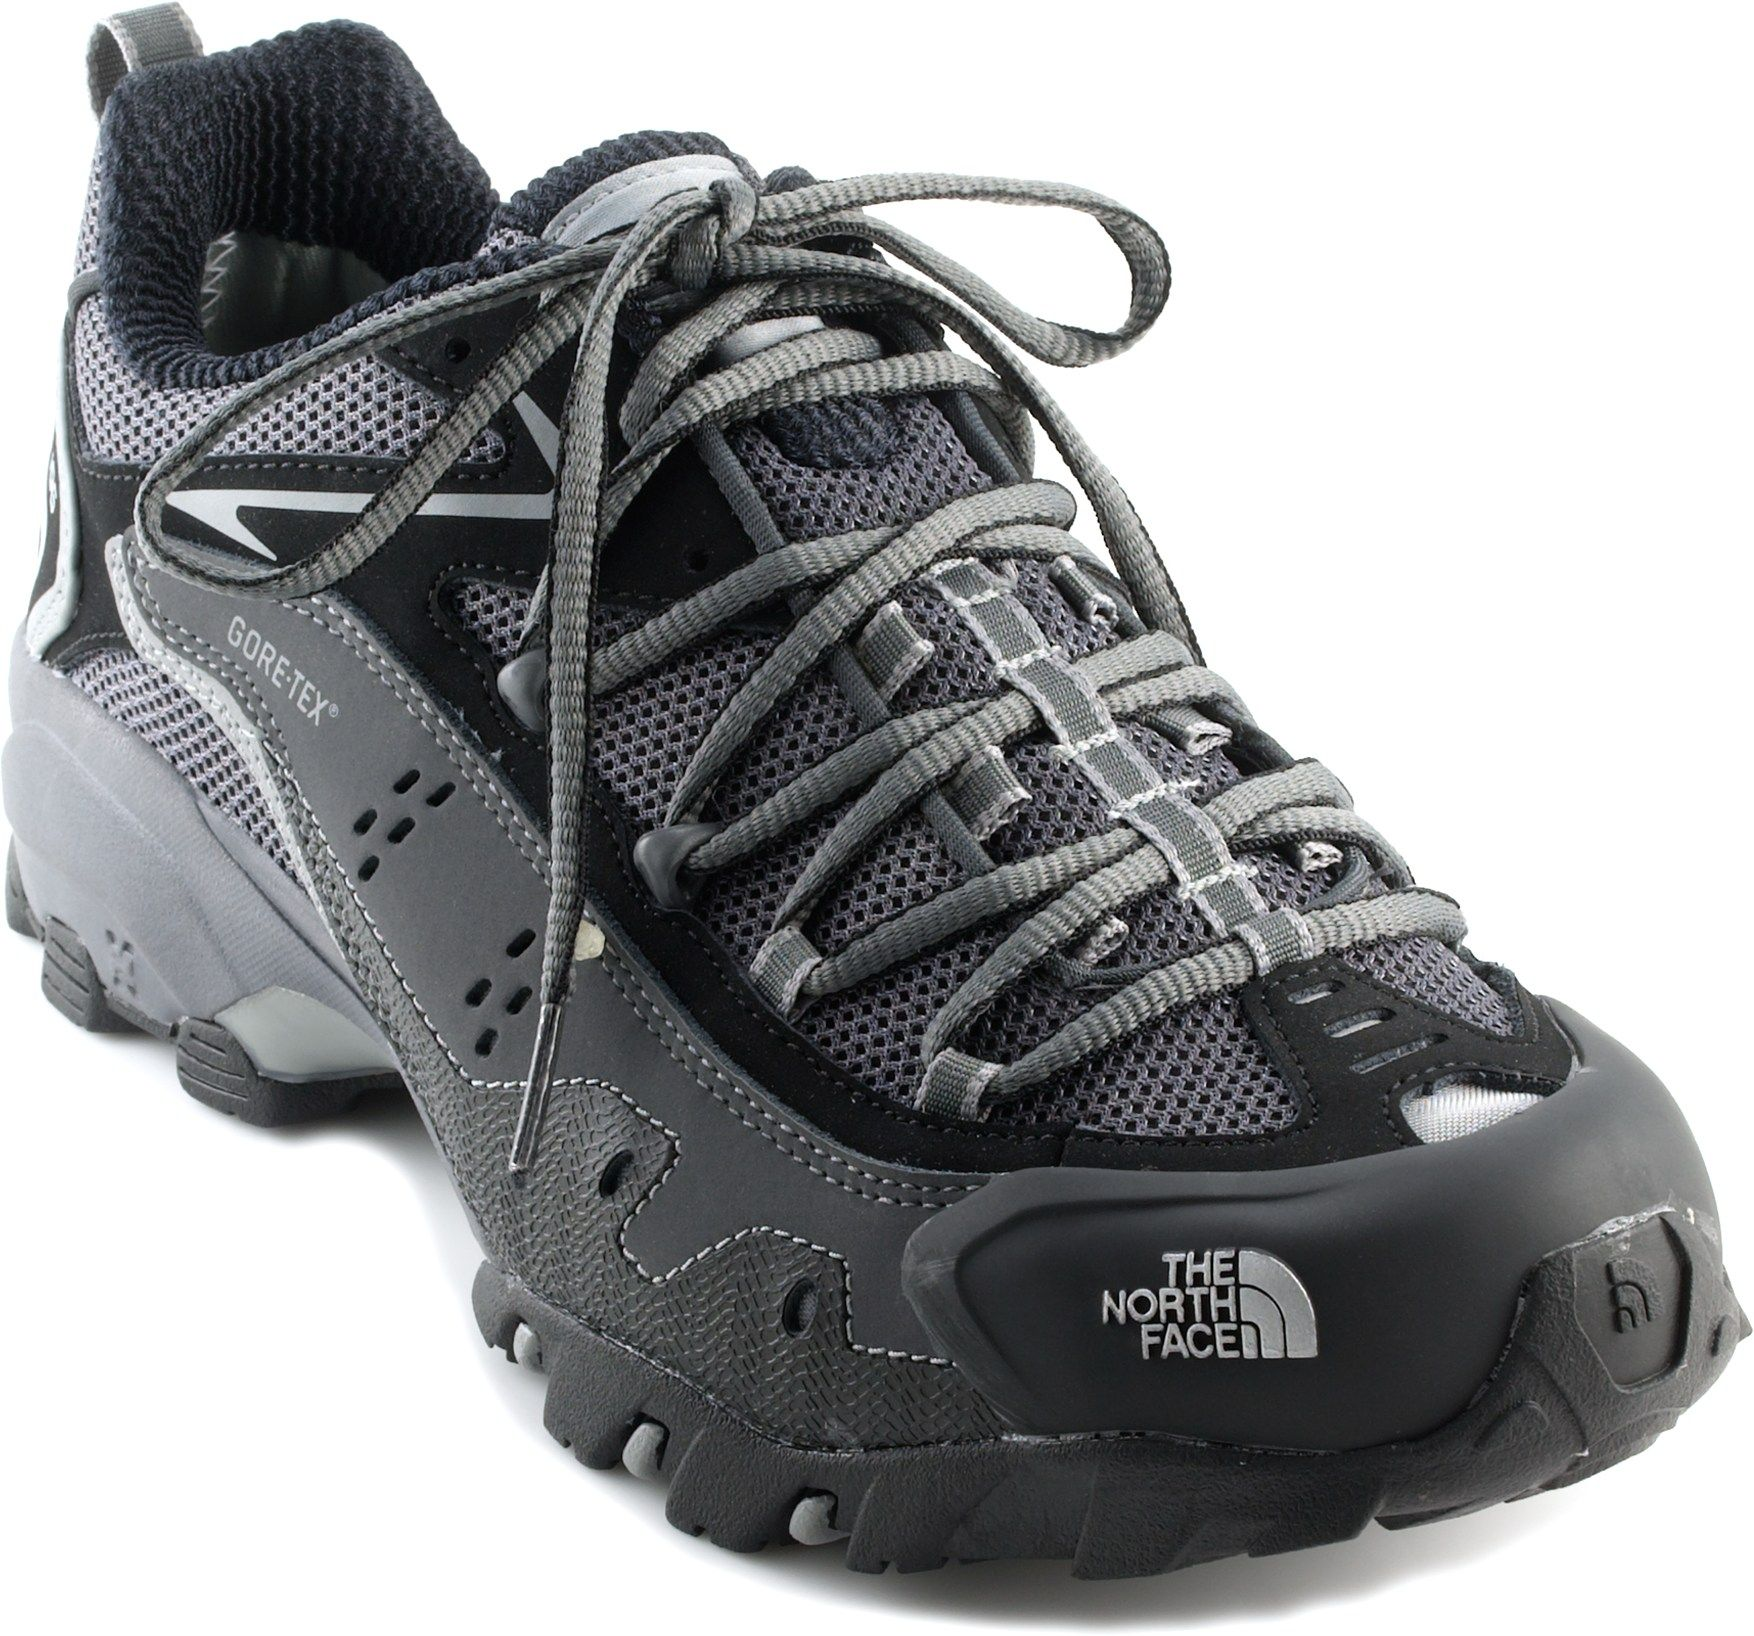 305bcd9572d034 The North Face Ultra 106 Gore-Tex XCR Trail-Running Shoes - Men s - Free  Shipping at REI.com